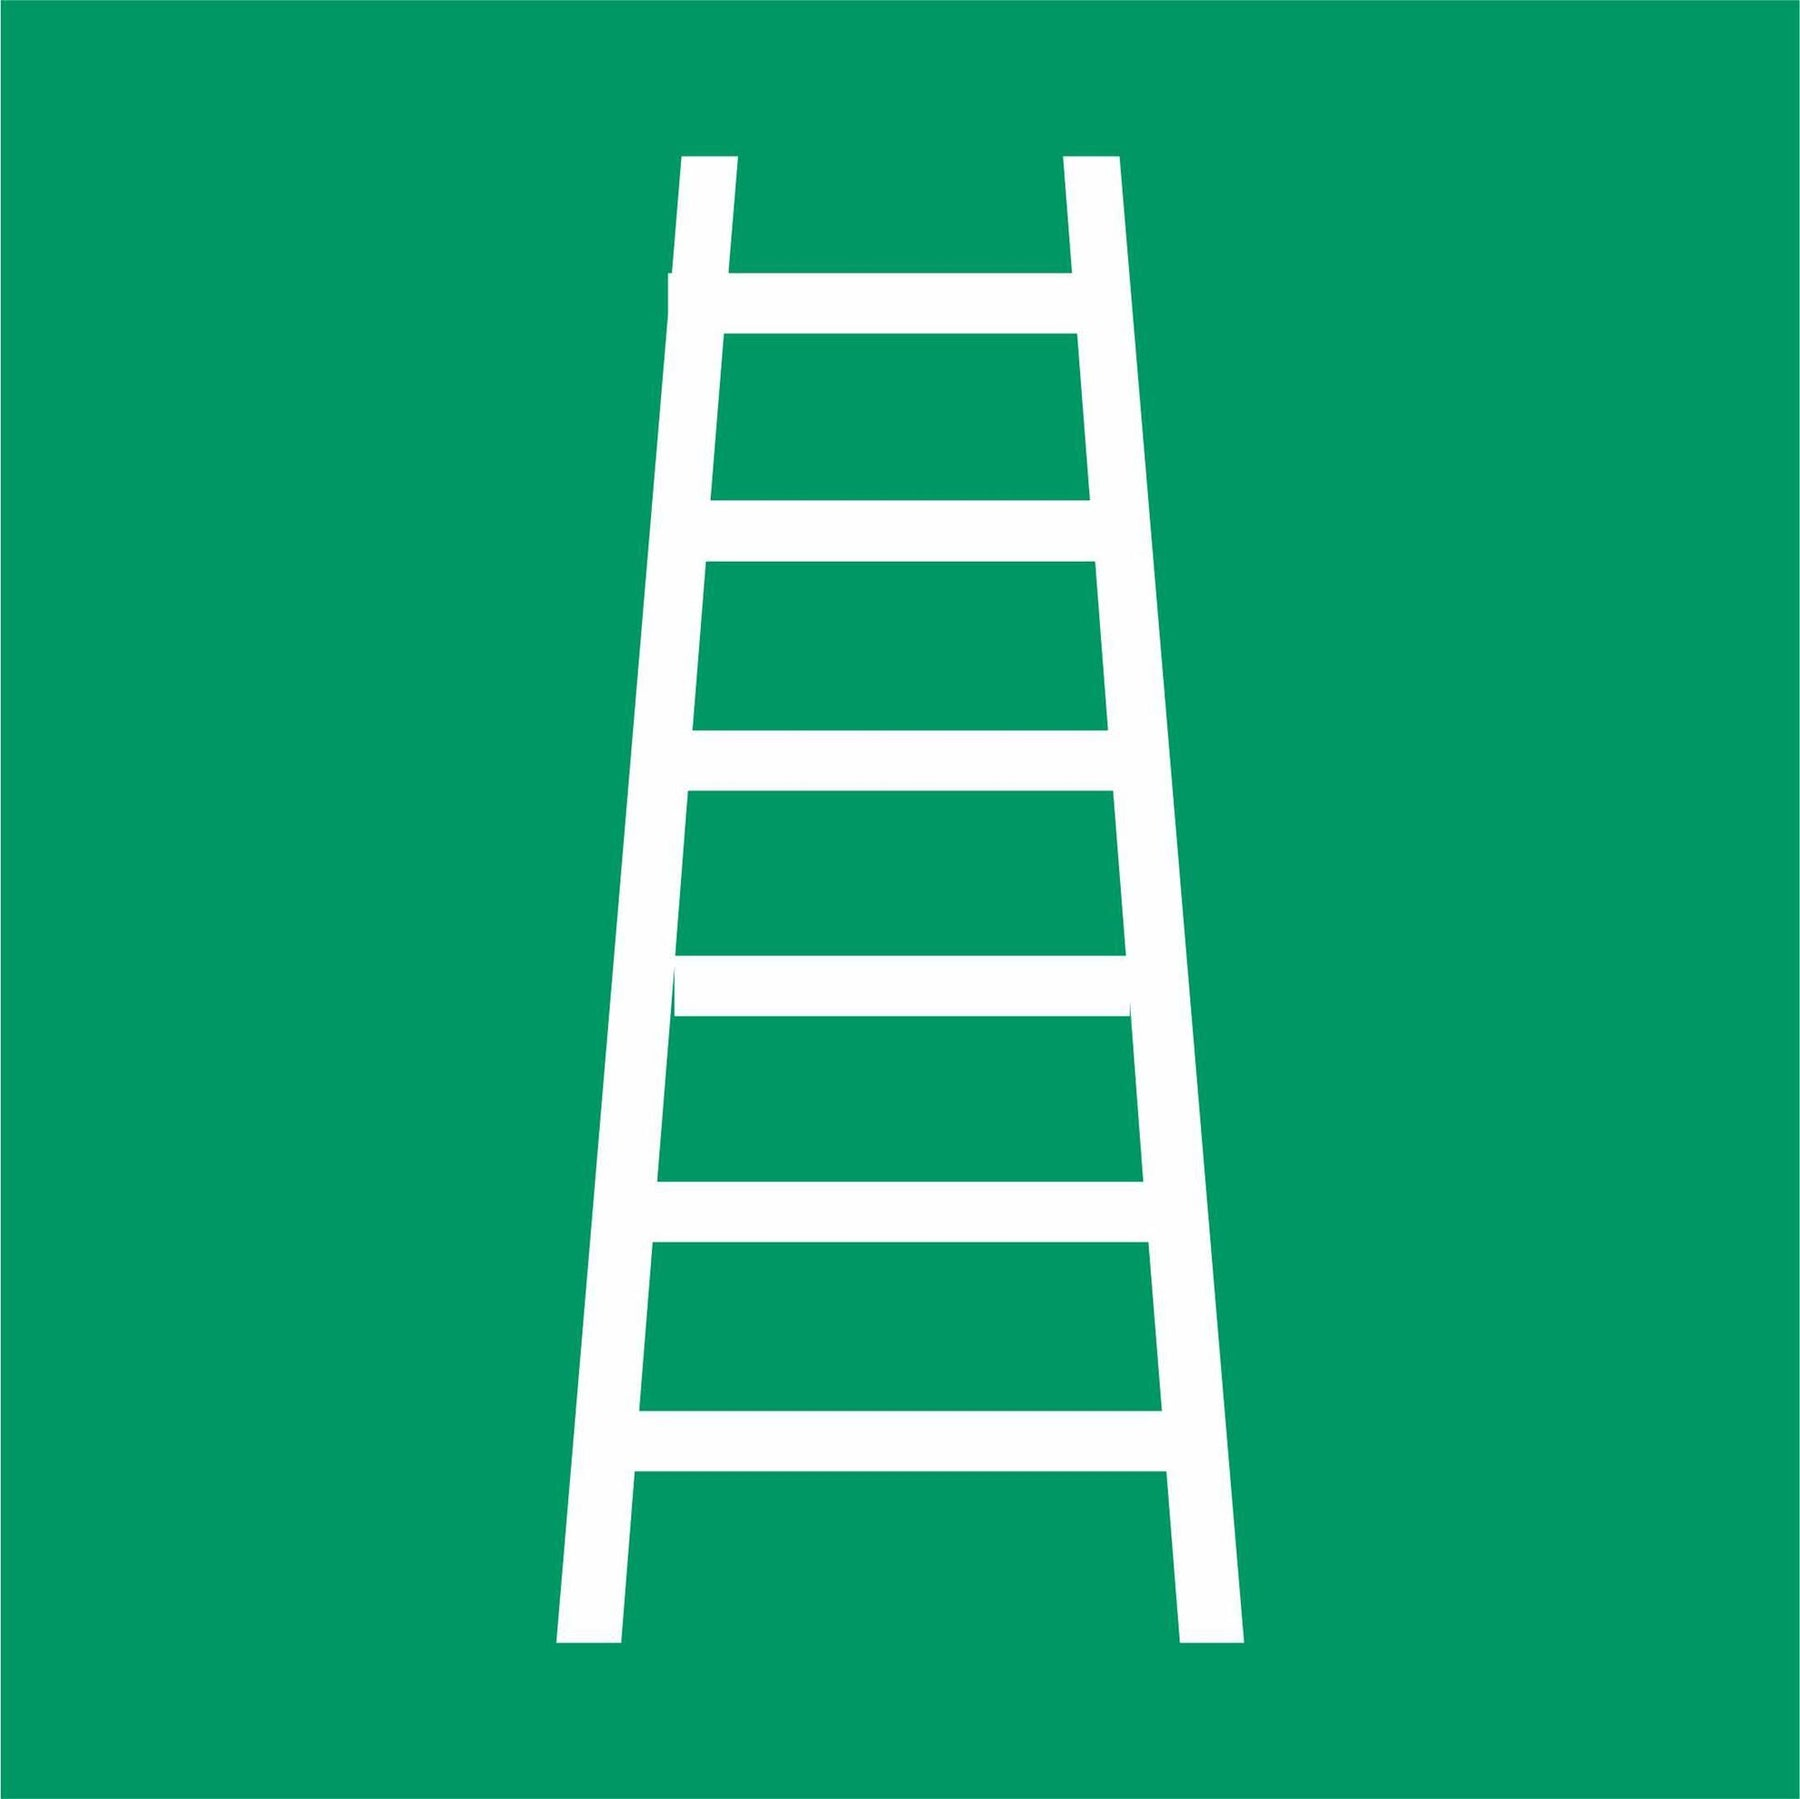 Emergency ladder - General safe conditions